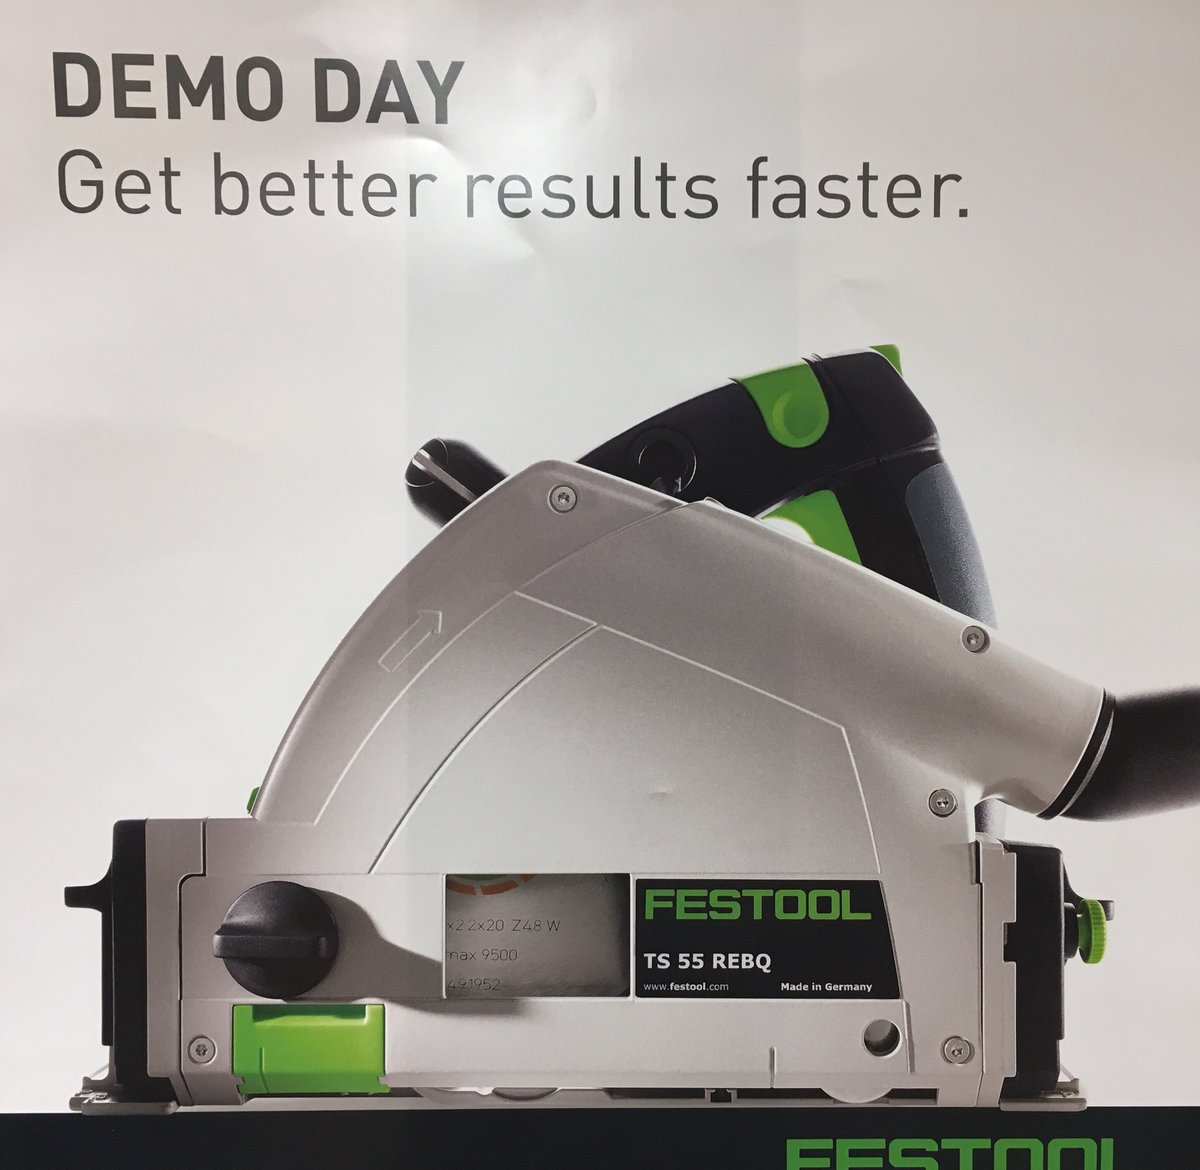 Festool Demo Days